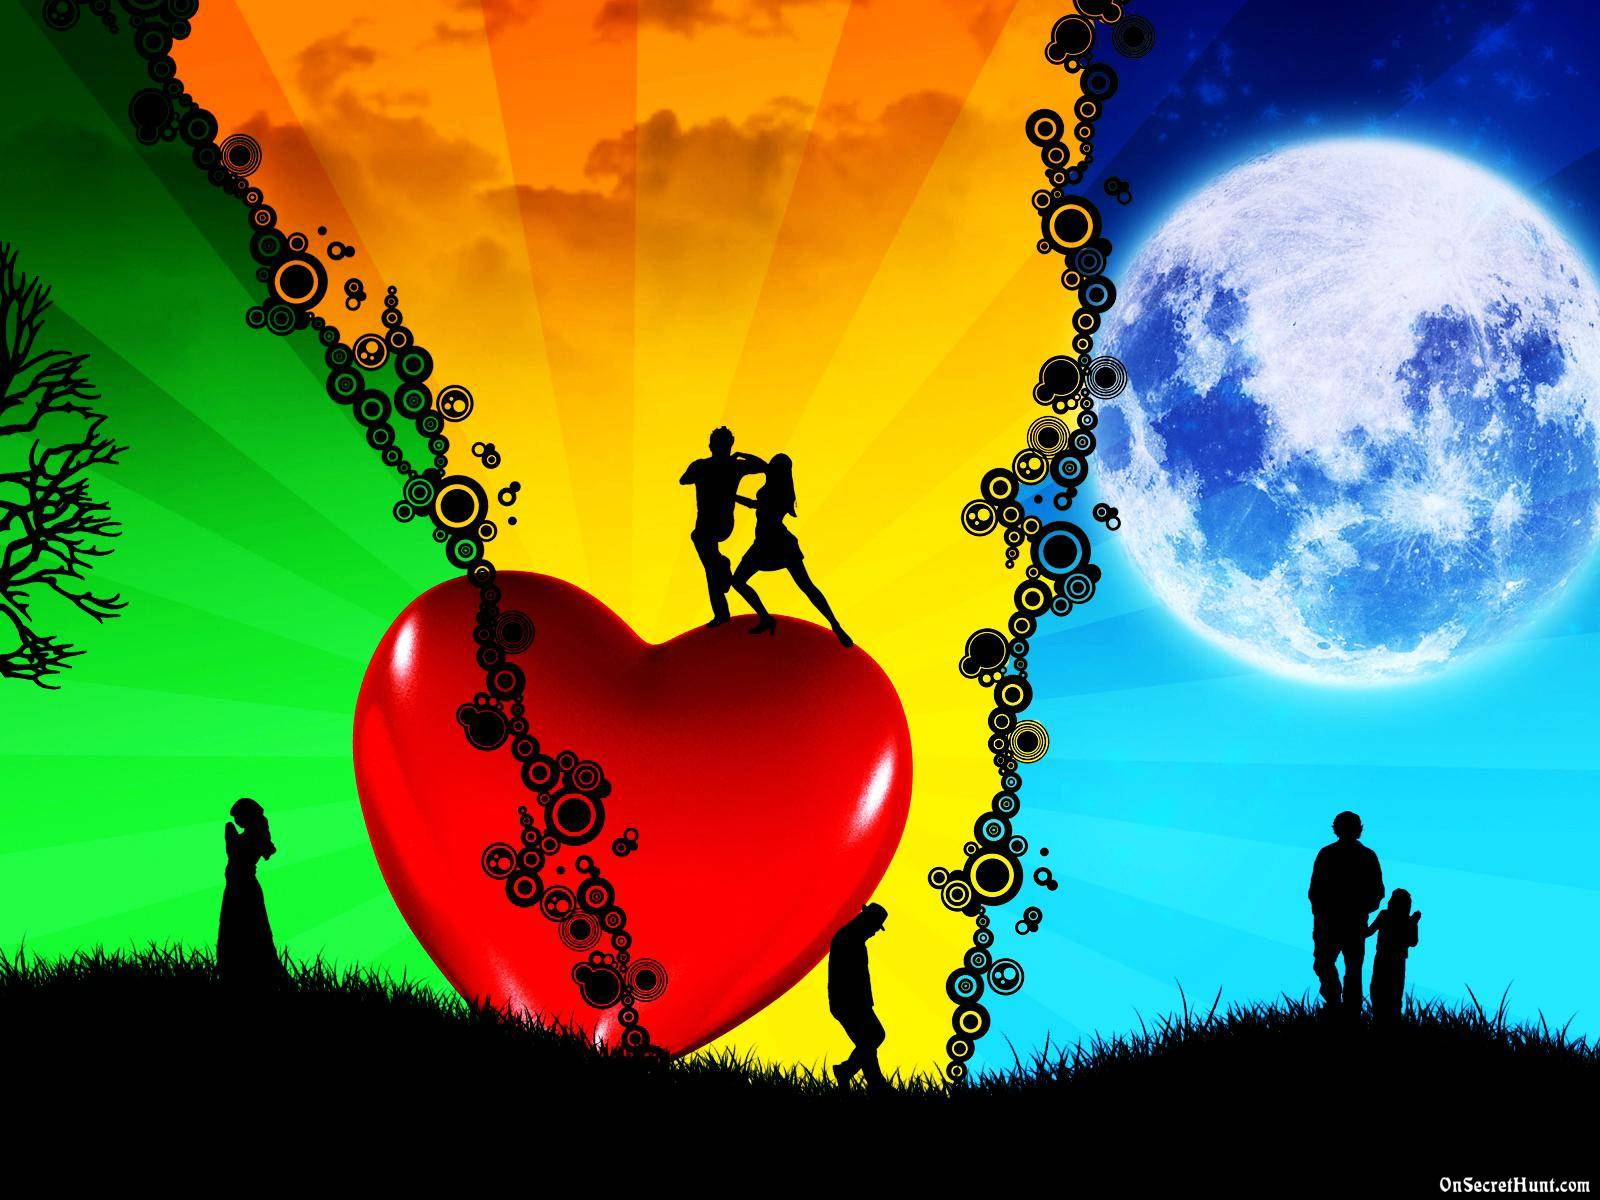 Wallpaper Full Hd Of Love : Love 3D Wallpapers - Wallpaper cave